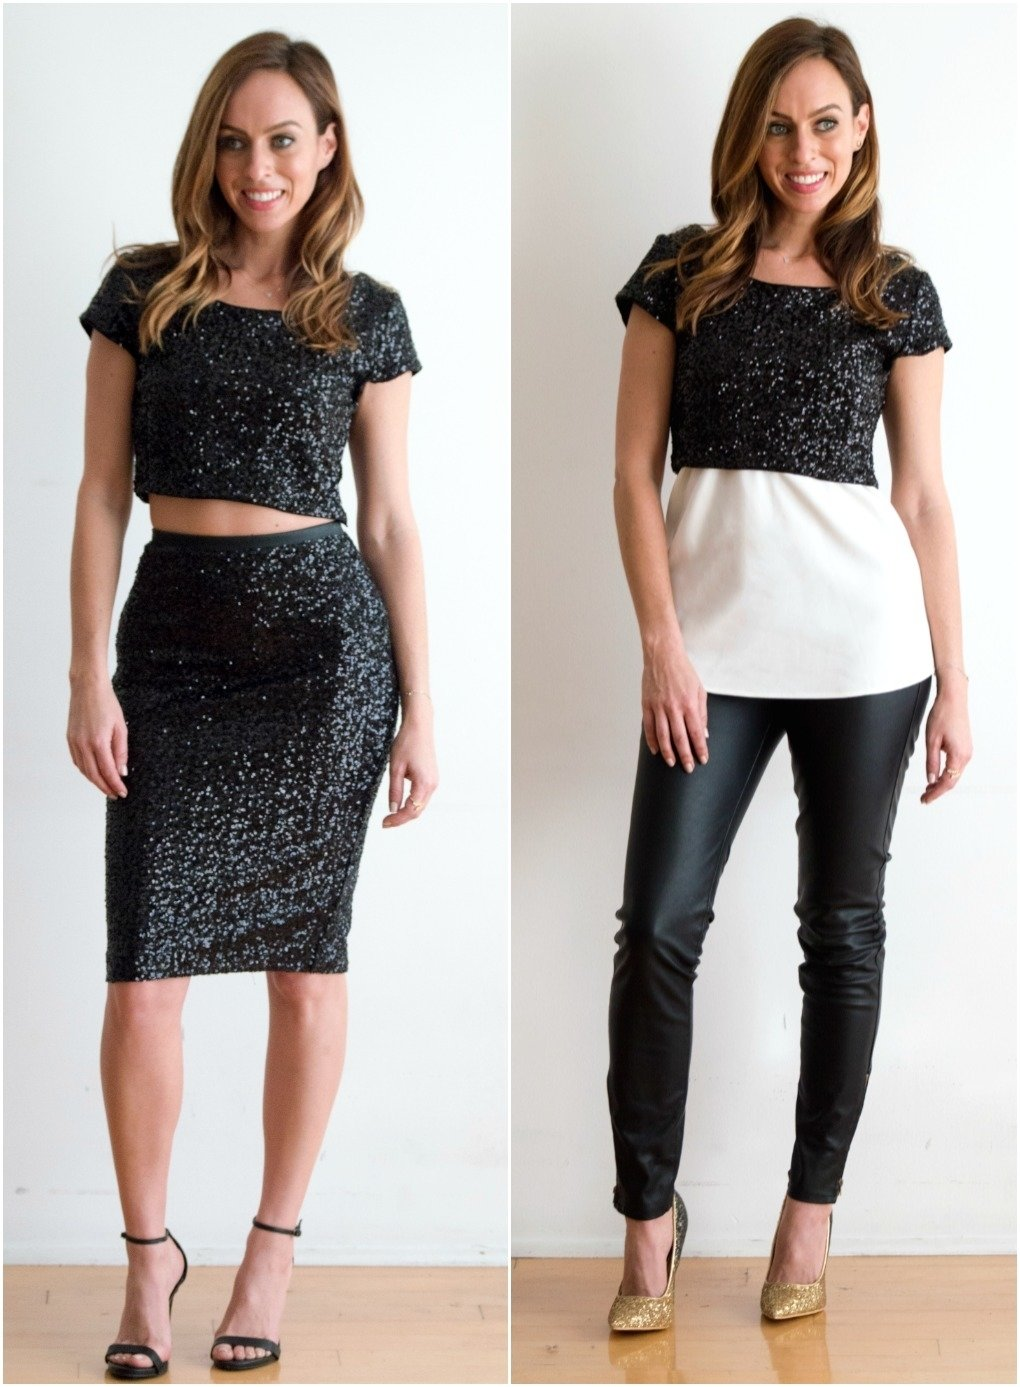 10 Ideal New Years Eve Dress Ideas six sequin outfit ideas for new years eve style holiday fashion 2020